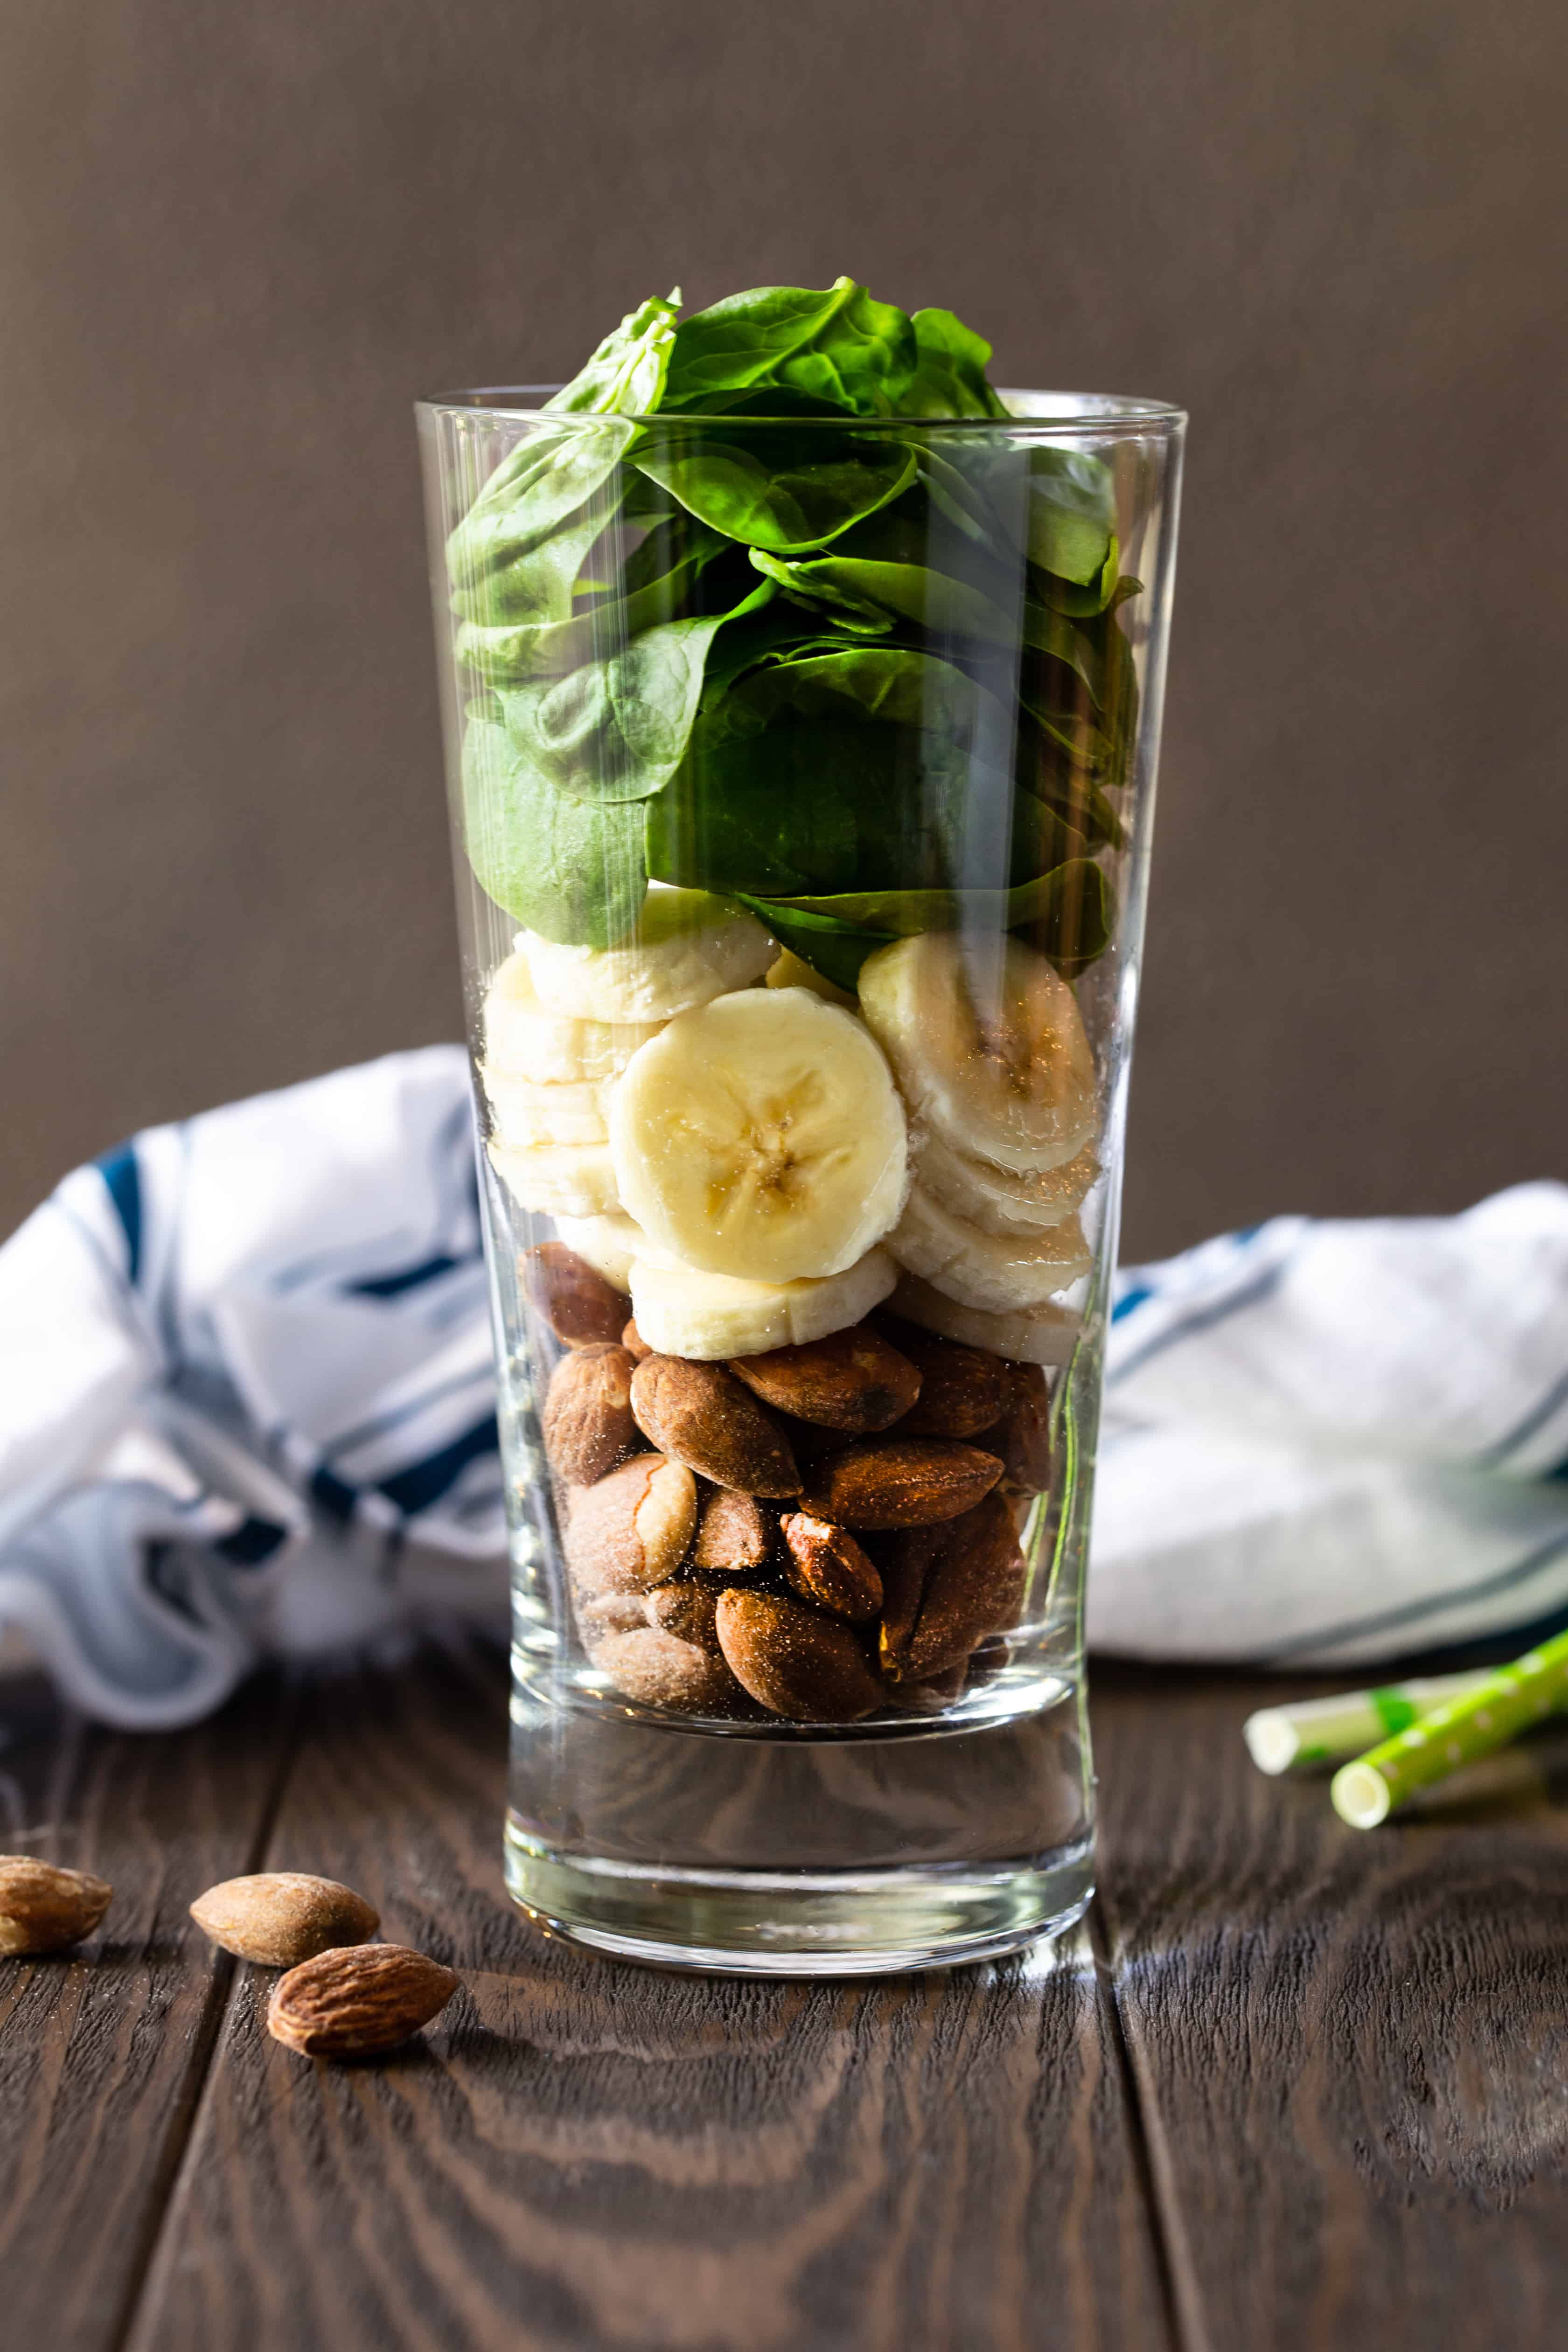 Glass filled with ingredients of Banana Spinach Protein Smoothie, including fresh spinach, banana slices and almonds.